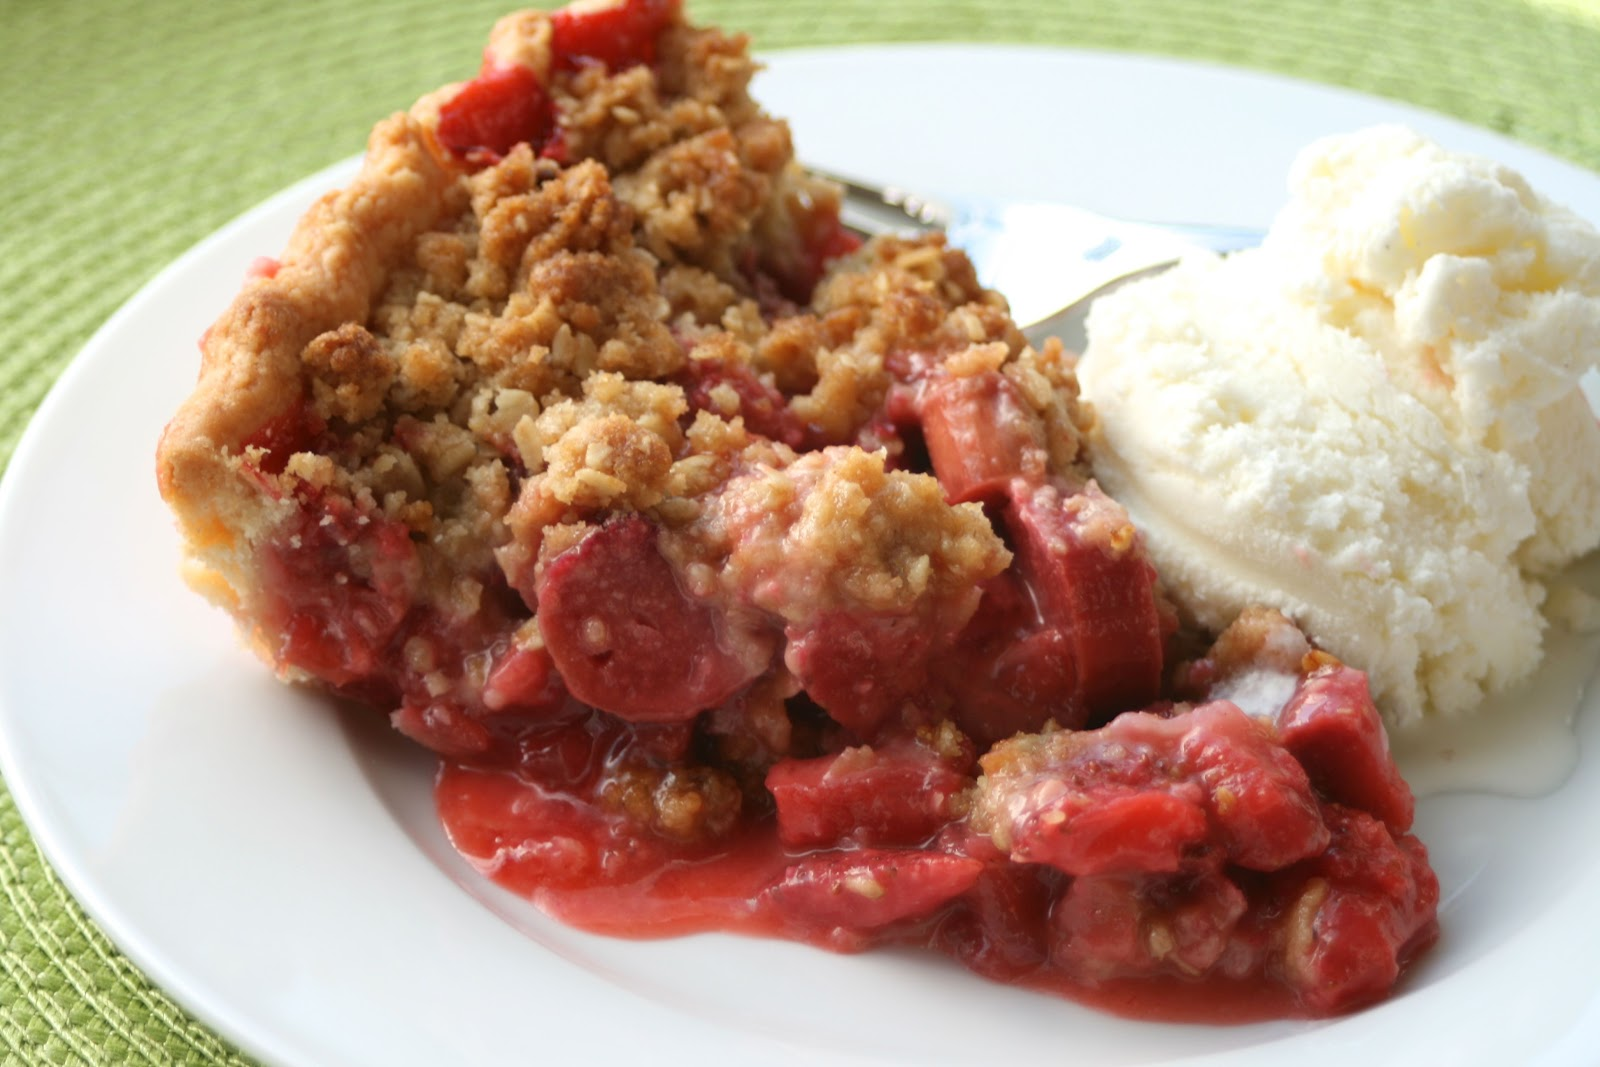 tune 'n fork: Strawberry Rhubarb Crumble Pie